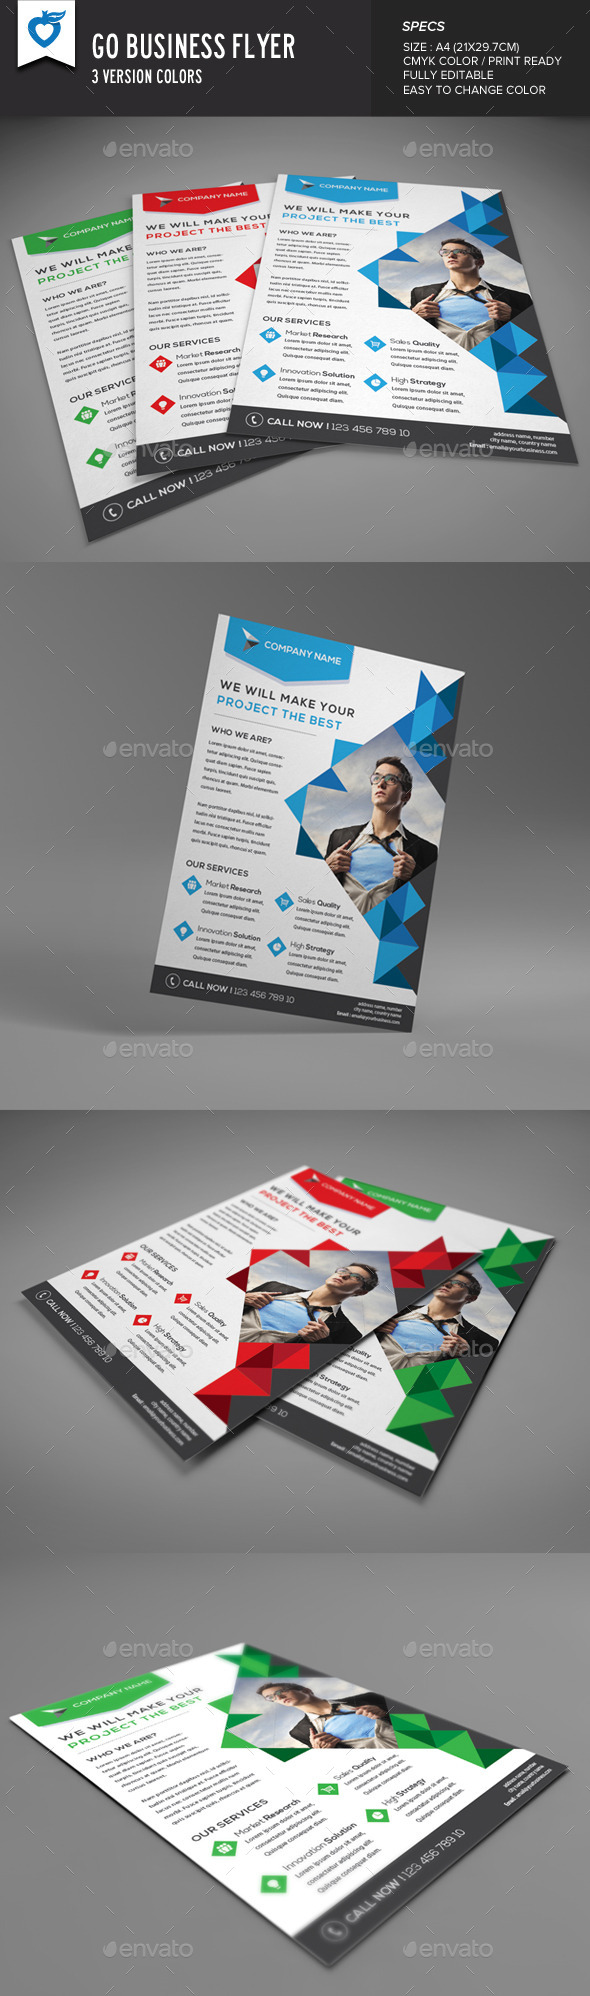 GraphicRiver Go Business Flyer 9493803